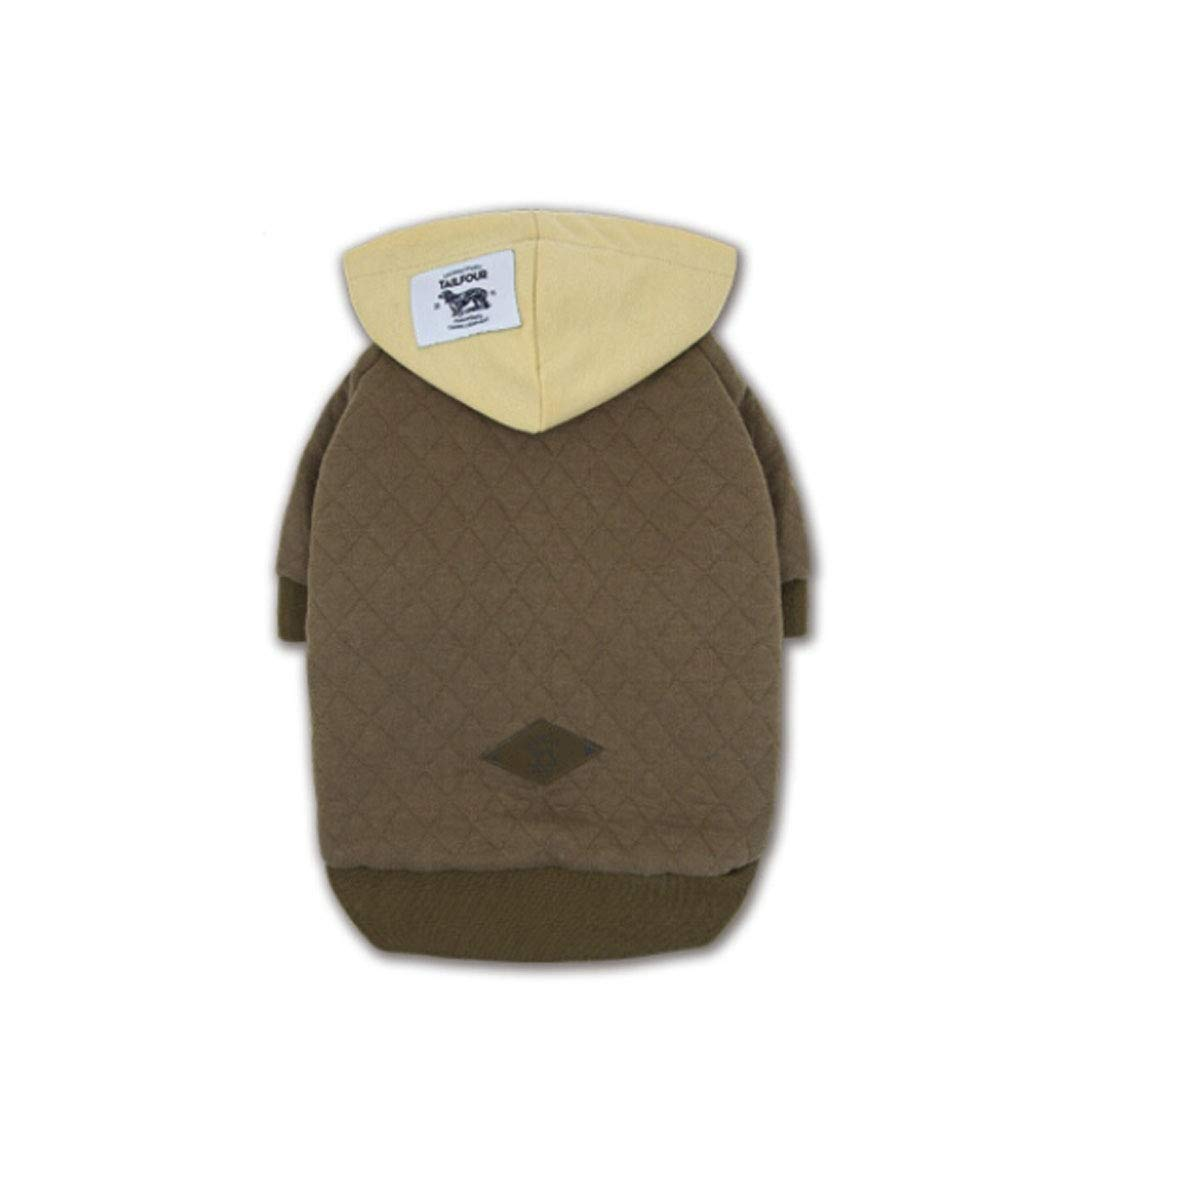 Number10 S Number10 S Haoyushangmao Winter New Teddy Cotton Coat Pet Dog Clothes Small Dog Cotton Jacket Double-Sided Cotton Vest Cat SN8250 TFCLO001402 XS Fashion (color   Number10, Size   S)